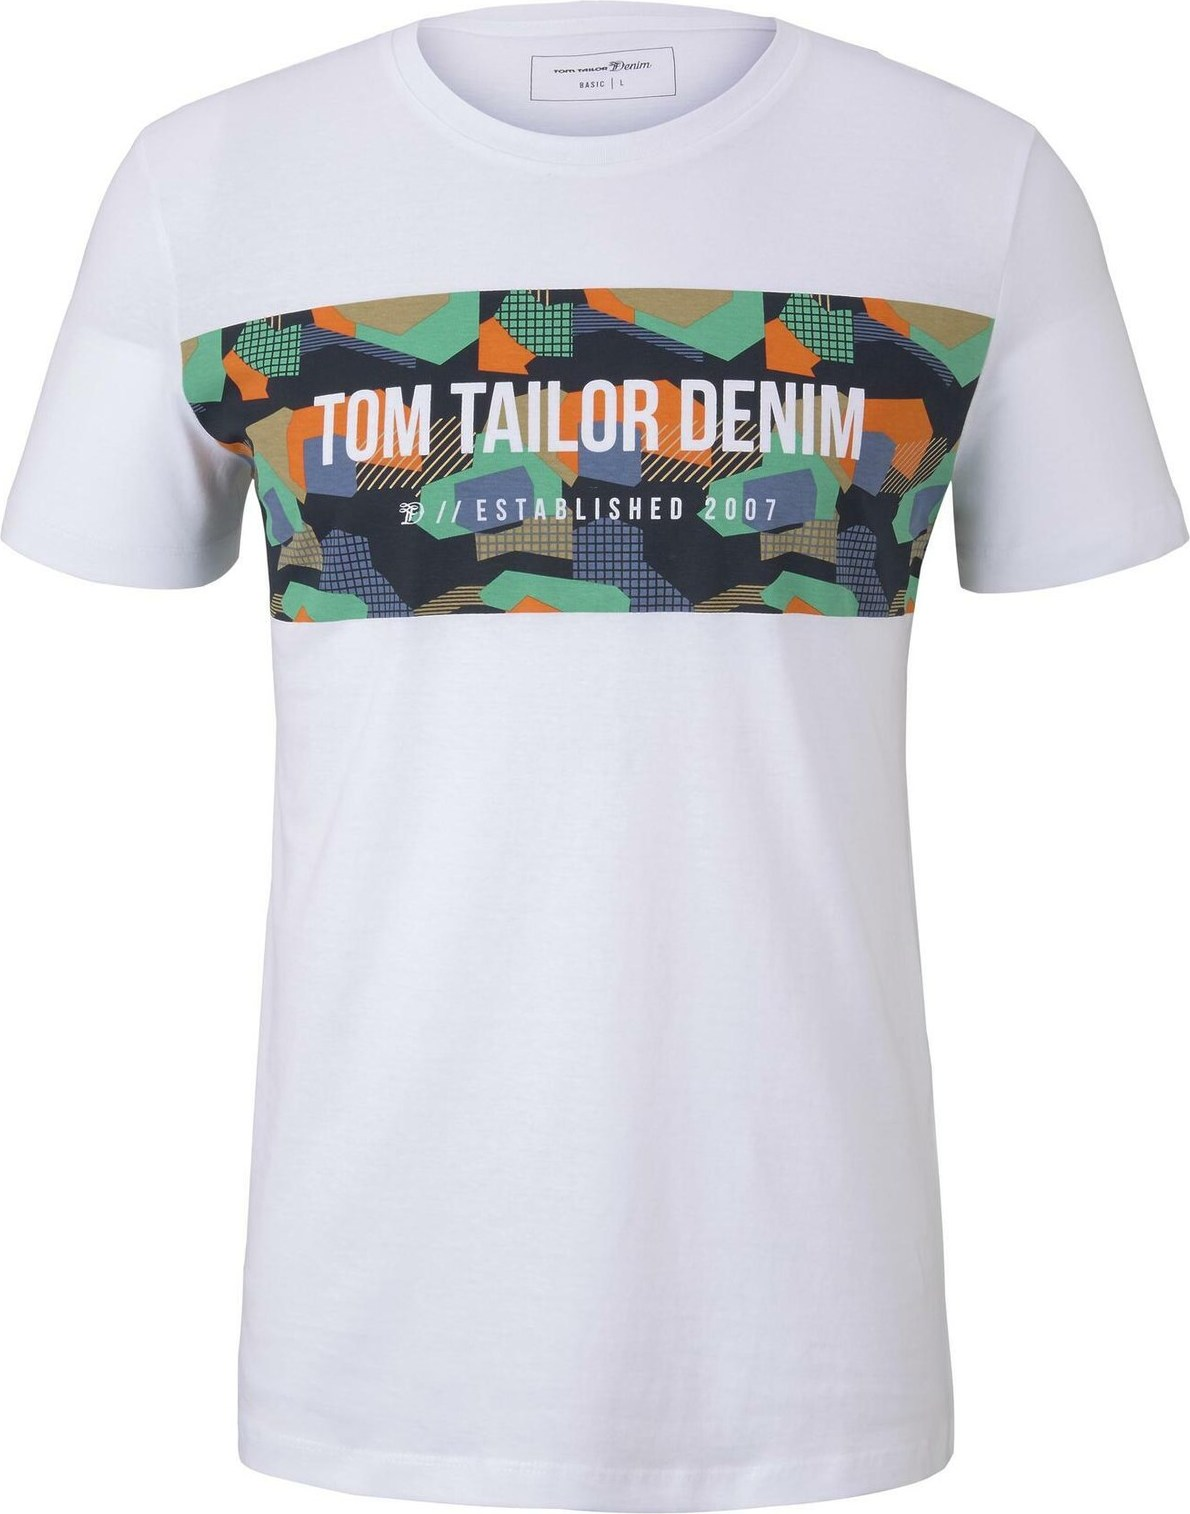 TOM TAILOR DENIM Tričko bílá mix barev Tom Tailor Denim